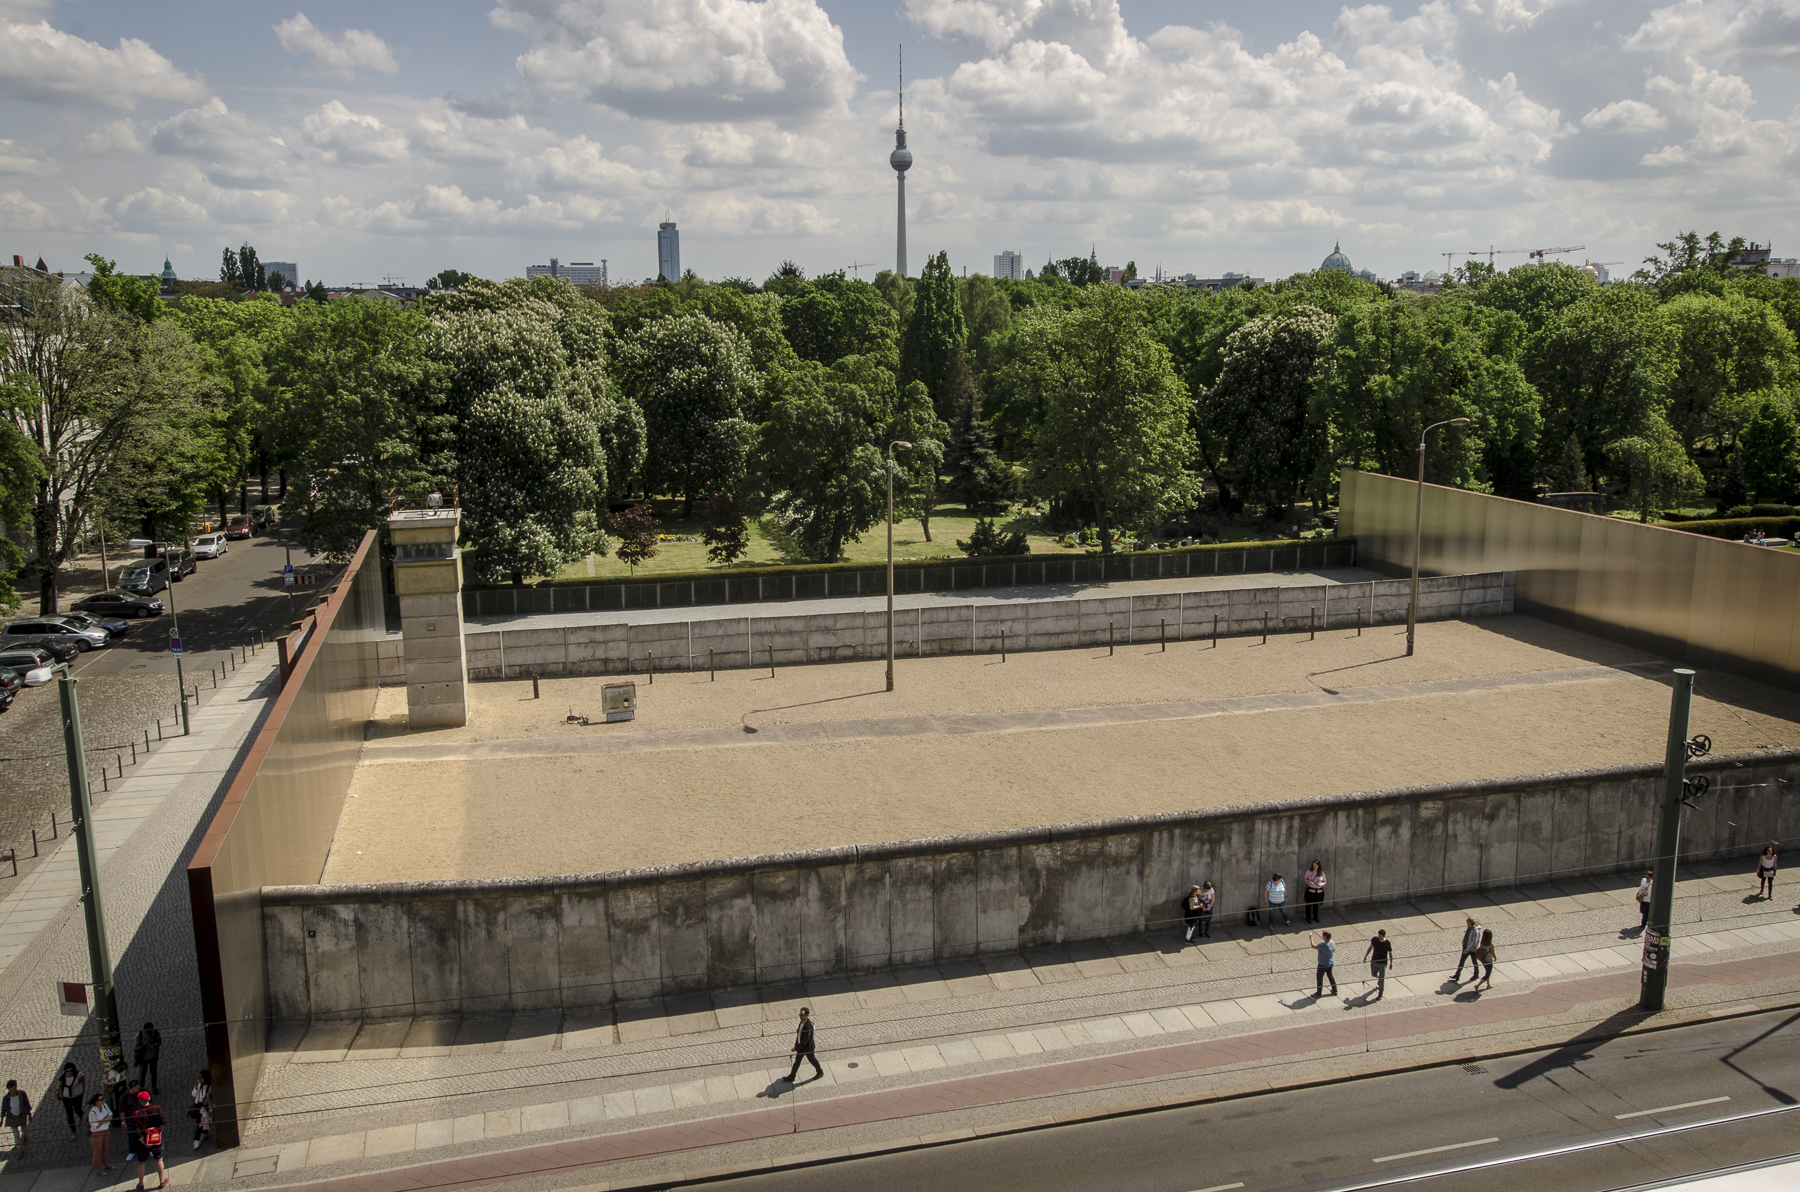 The 'Death Strip' as seen from the raised platform at the Berlin Wall Museum Photography : Alexander J.E. Bradley - Nikon D7000 - 24-70mm f/2.8 @ 70mm - f/9 - 1/125 - ISO 100